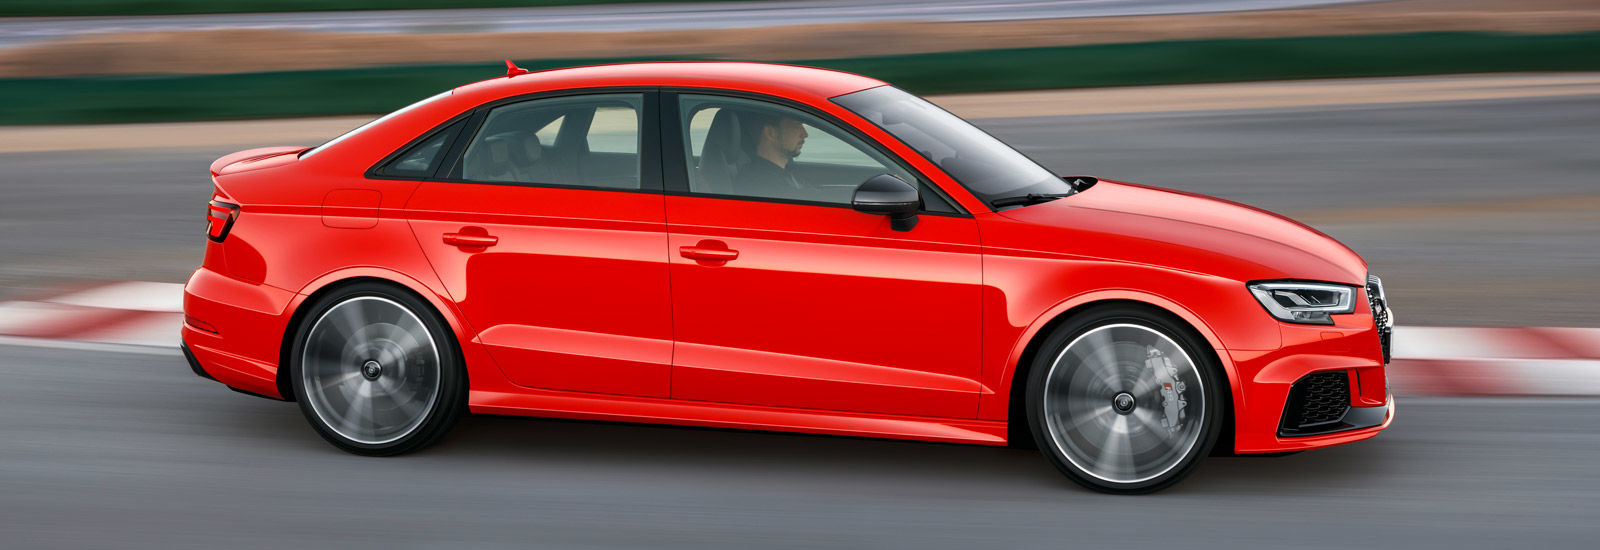 New Audi Rs3 Saloon Price Specs Release Date Carwow